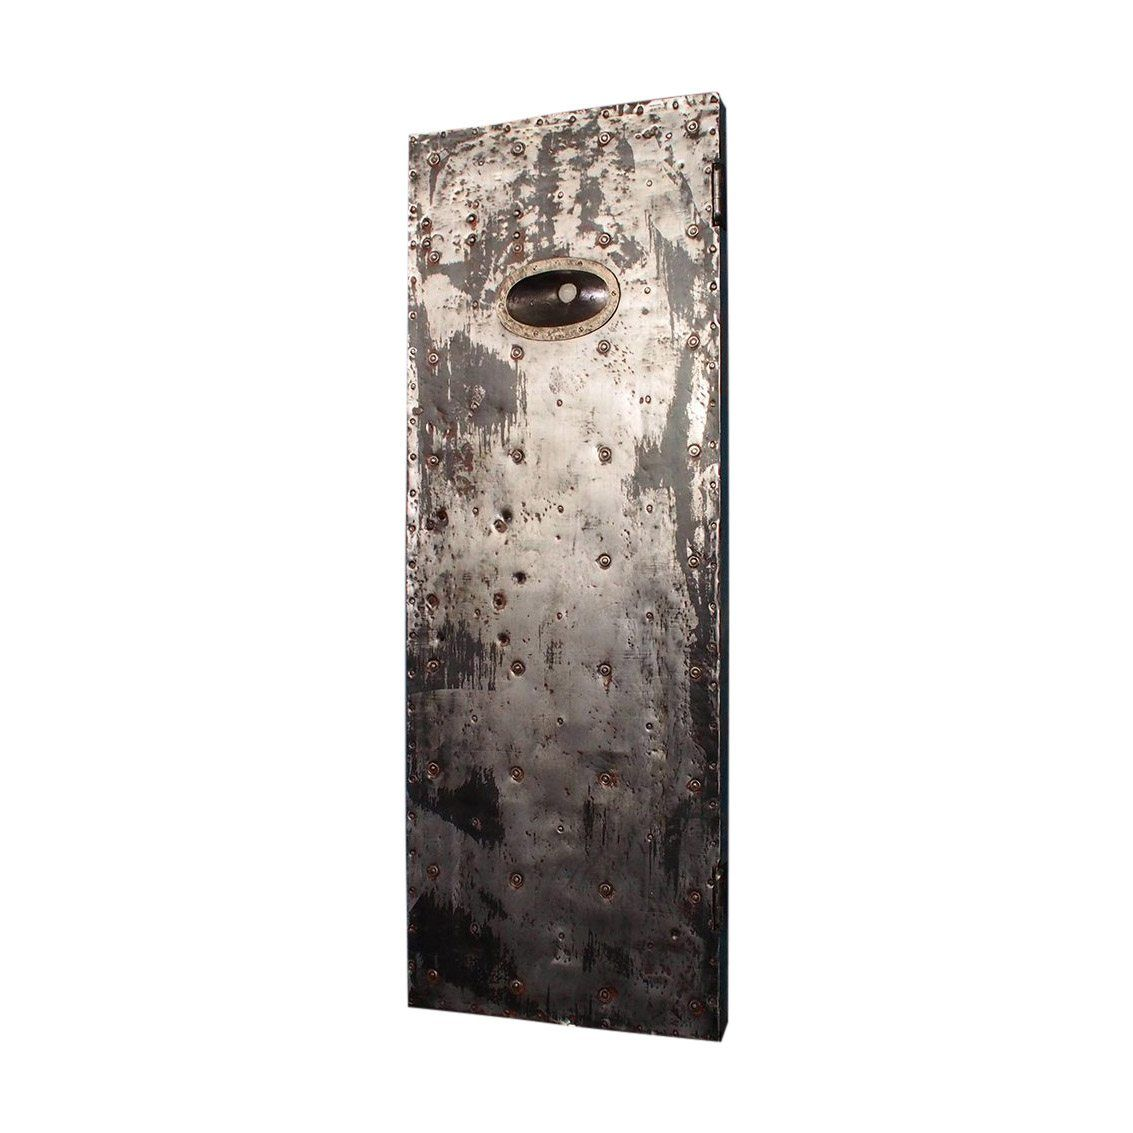 Authentic Vintage Prison Cell Door